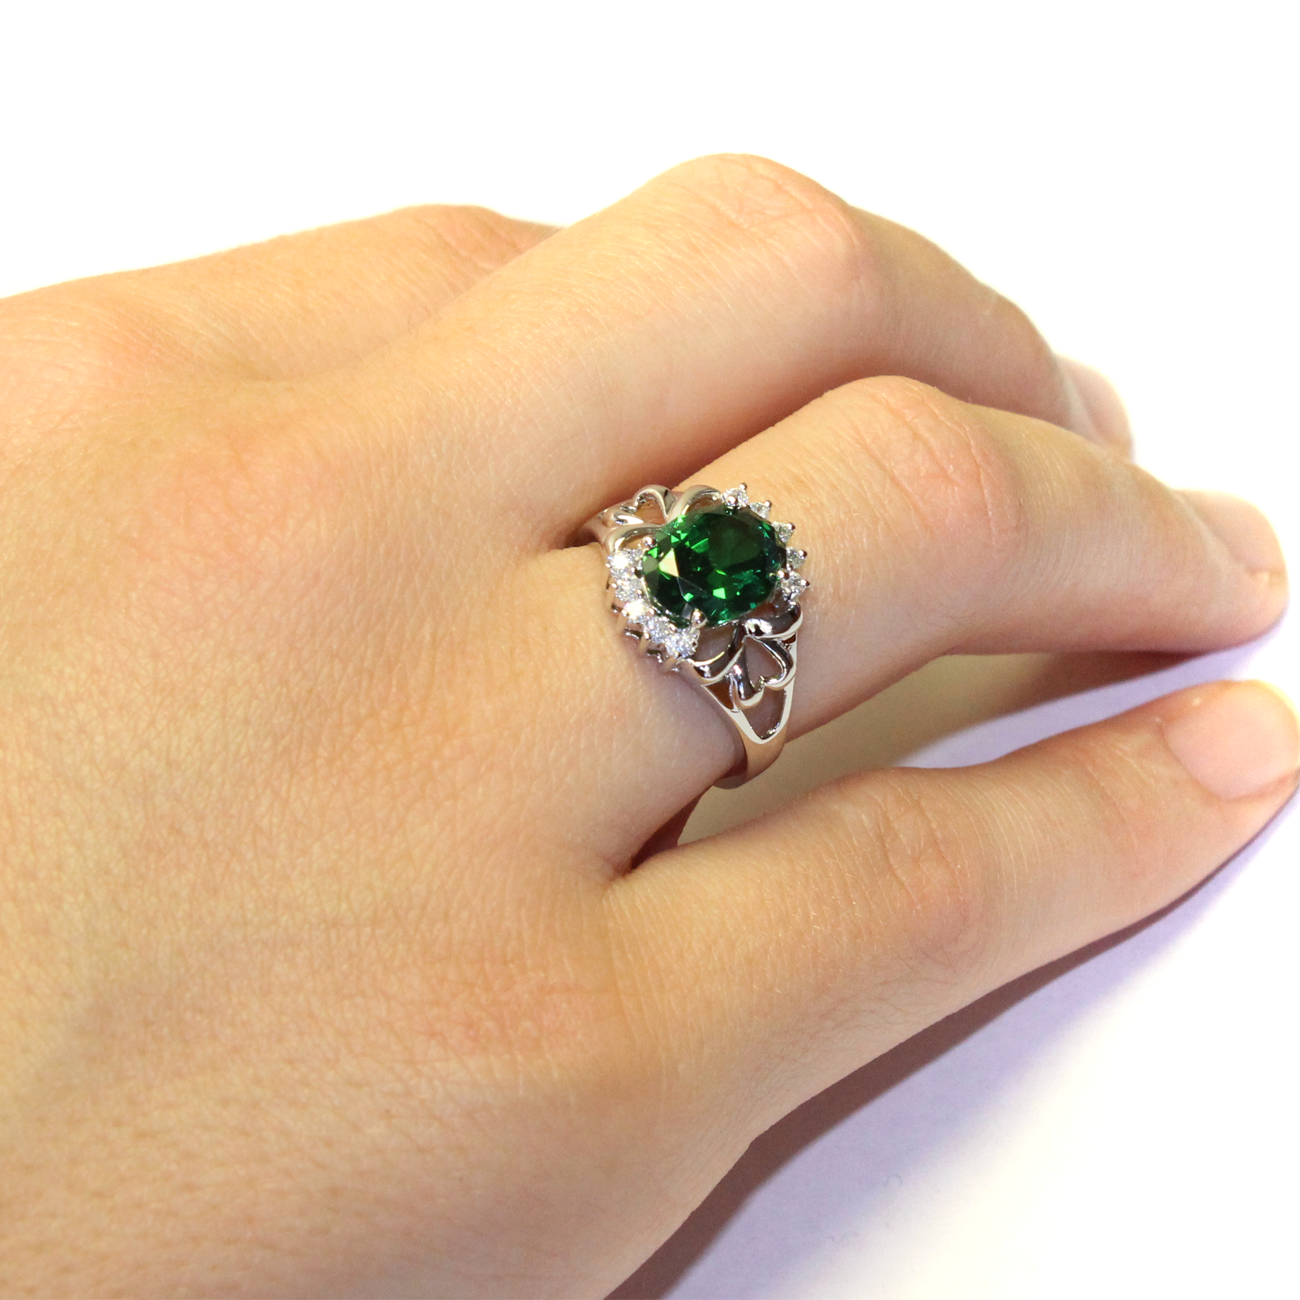 rings classic promise ring product green cute emerald